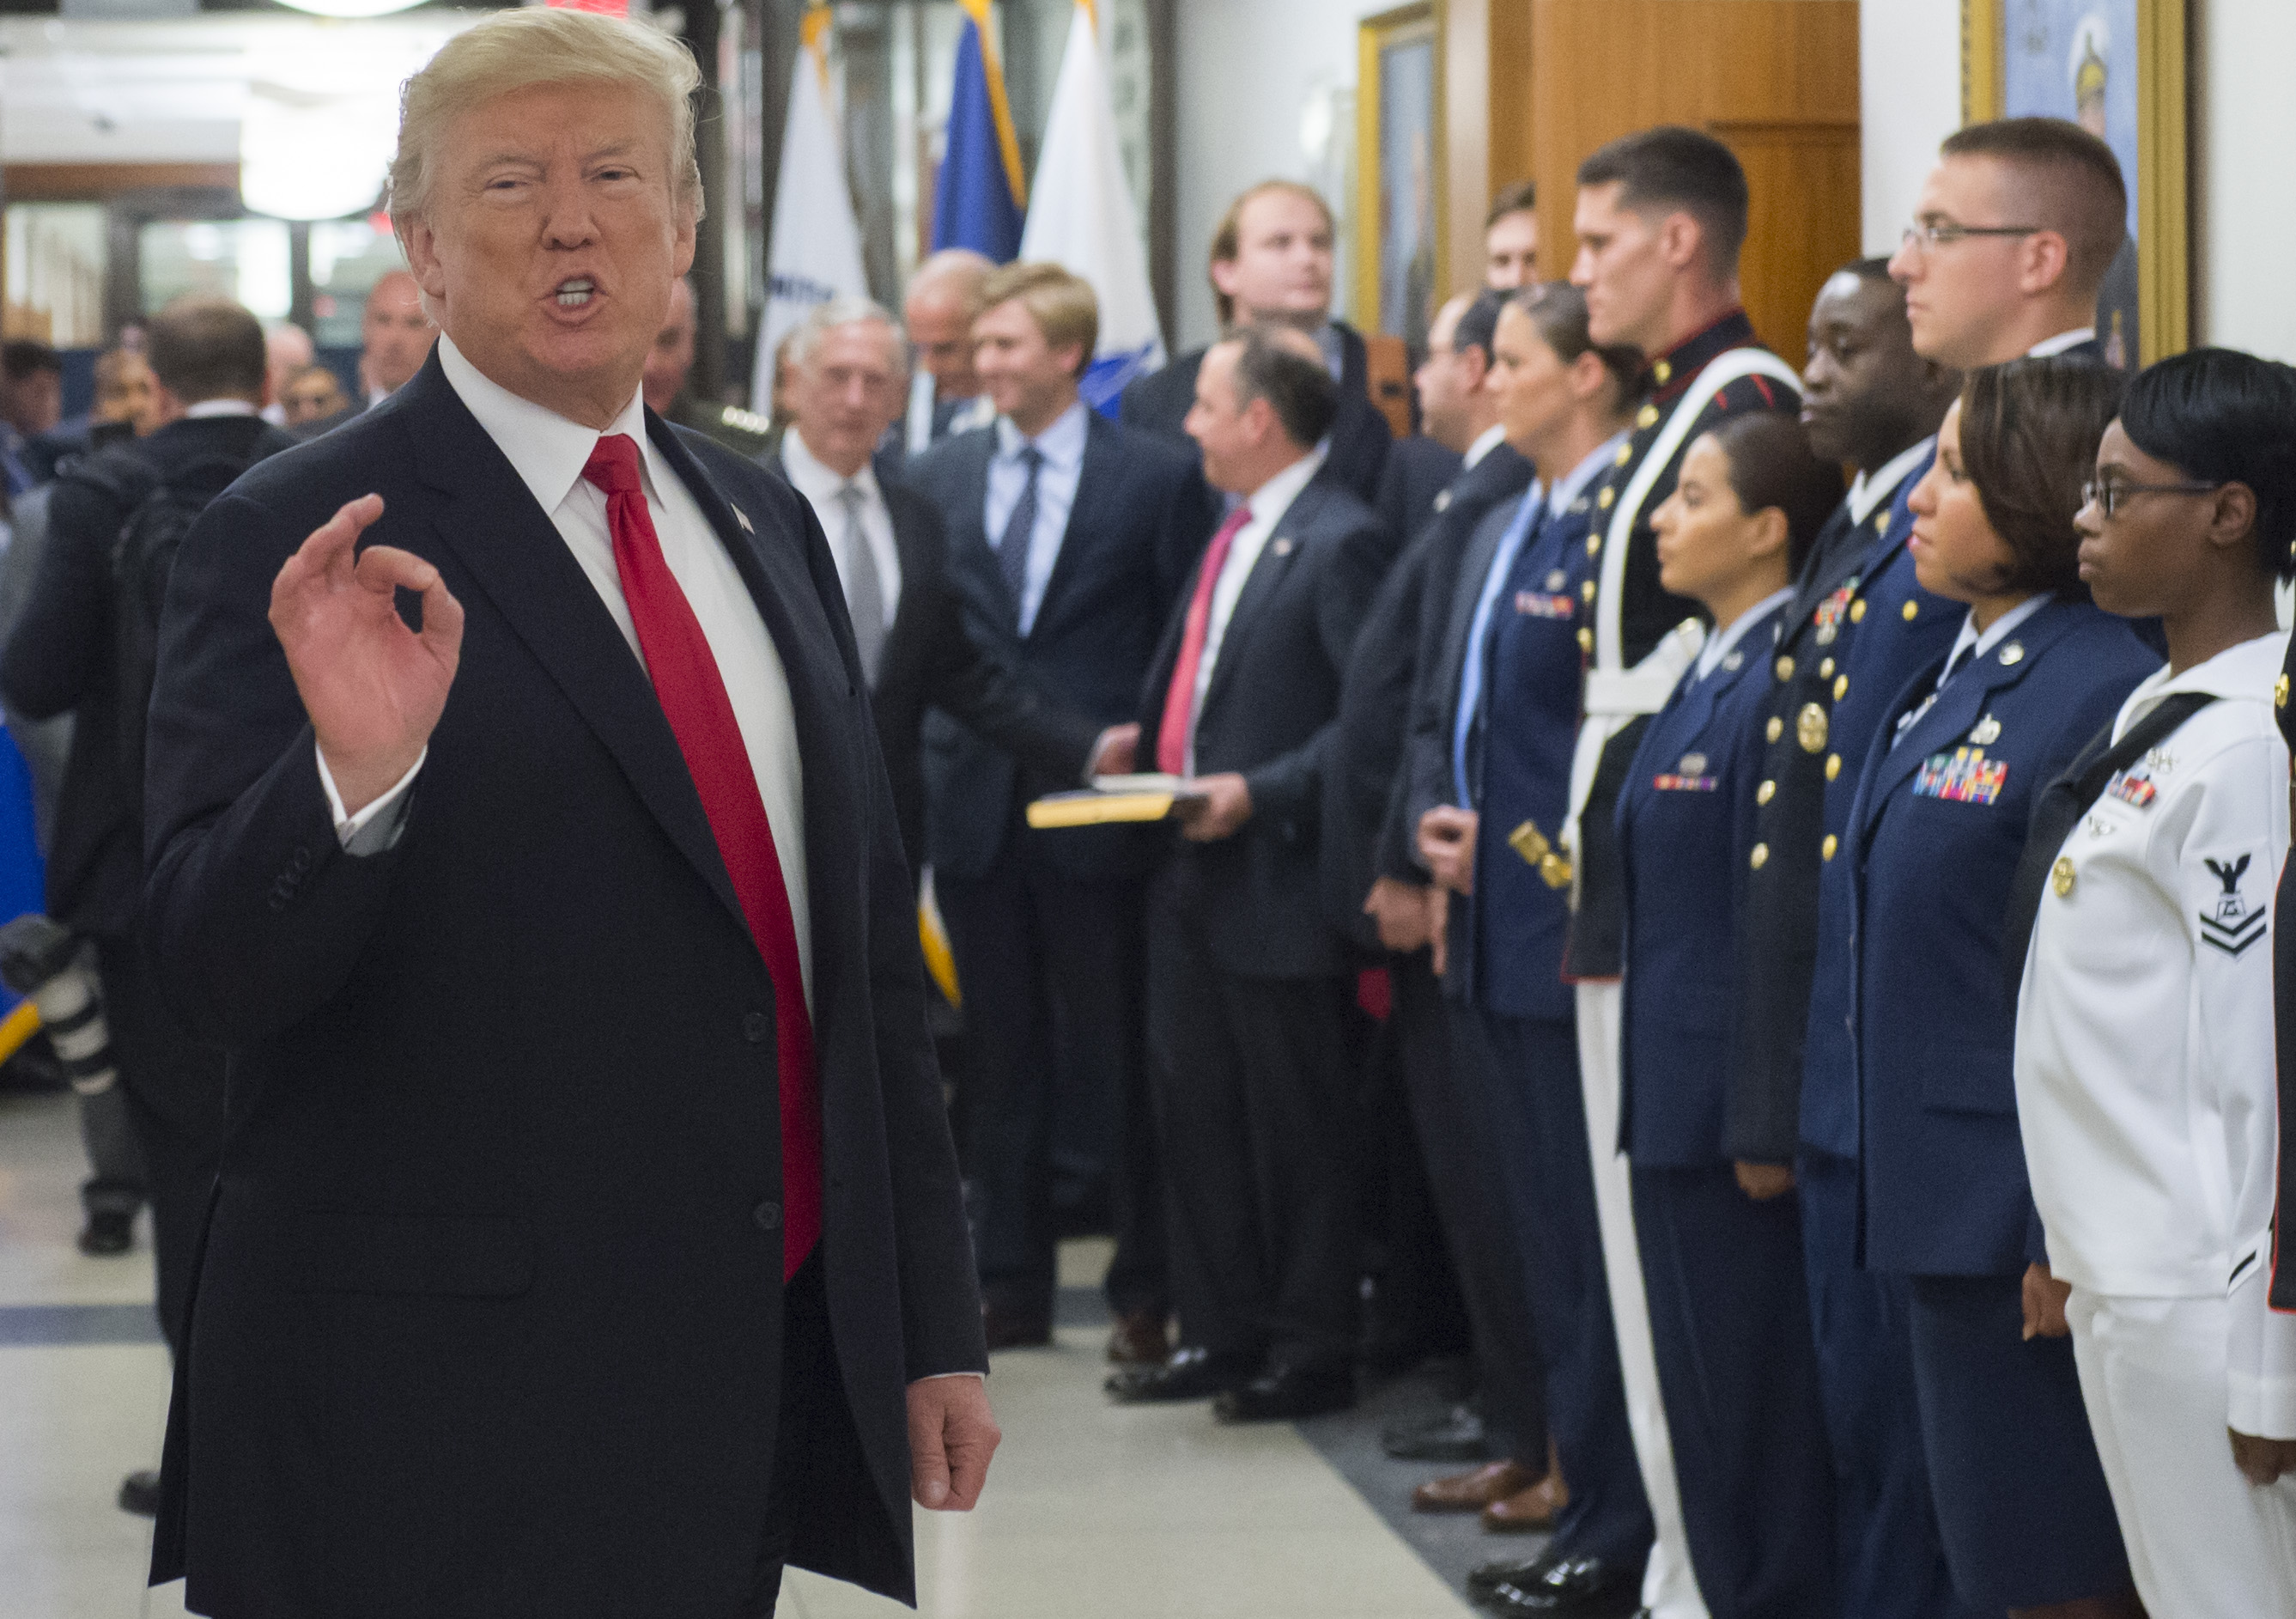 US President Donald Trump speaks to members of the US military following a meeting at the Pentagon in Washington, DC, July 20, 2017.